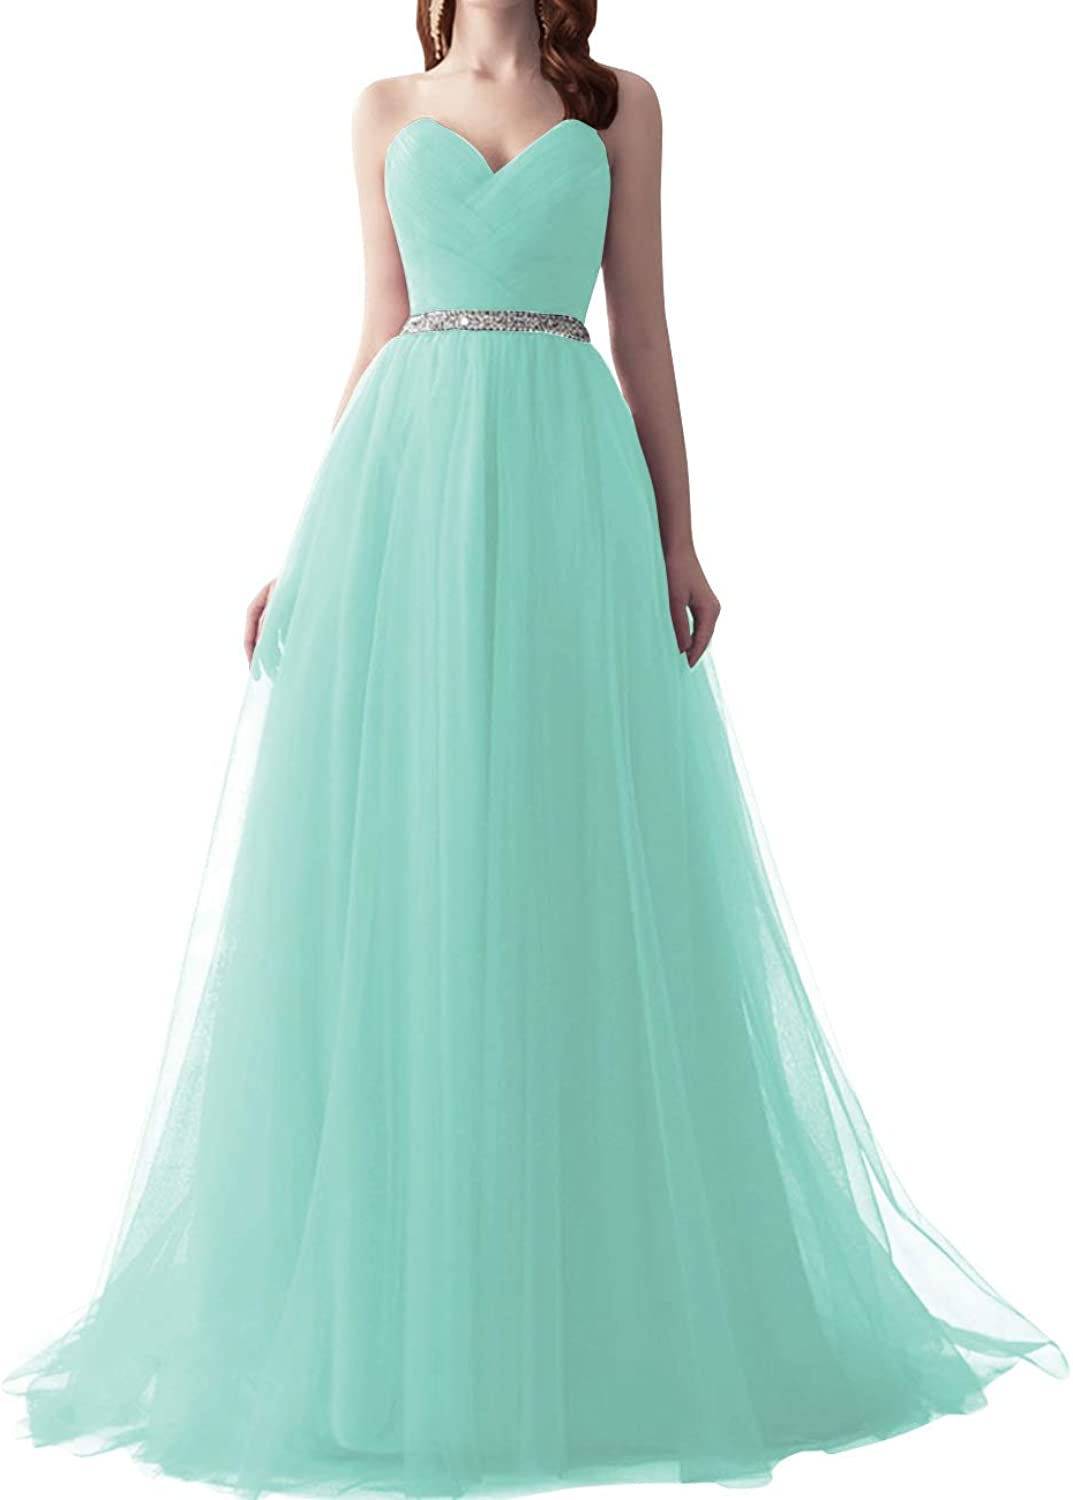 SUNFURA Women's Lace up Beaded Sweetheart Long Tulle Prom Evening Party Dress